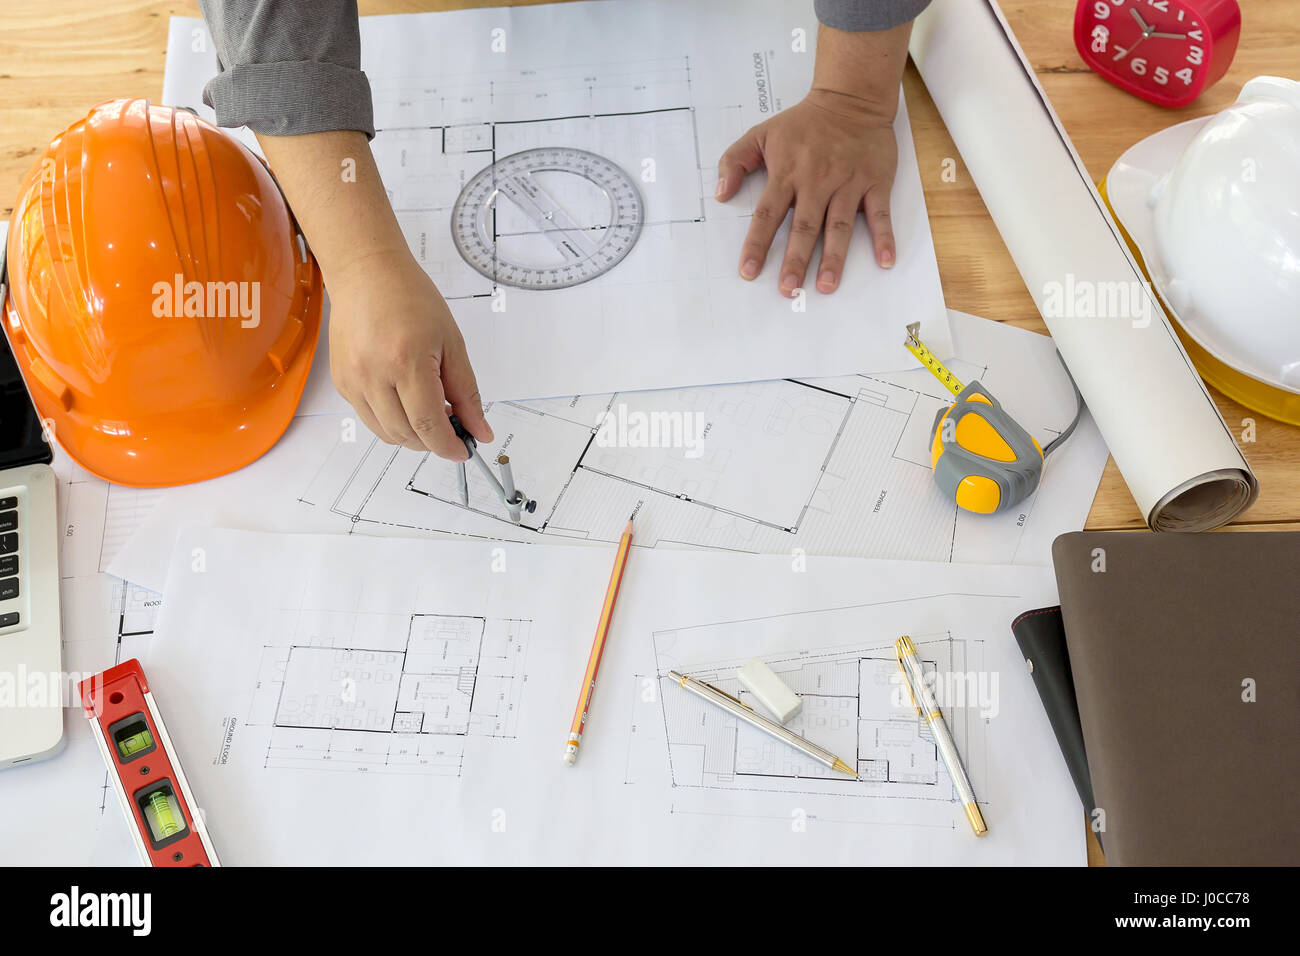 Architect working on blueprint architects workplace architect working on blueprint architects workplace architectural project blueprints ruler calculator laptop and divider compass construction malvernweather Gallery